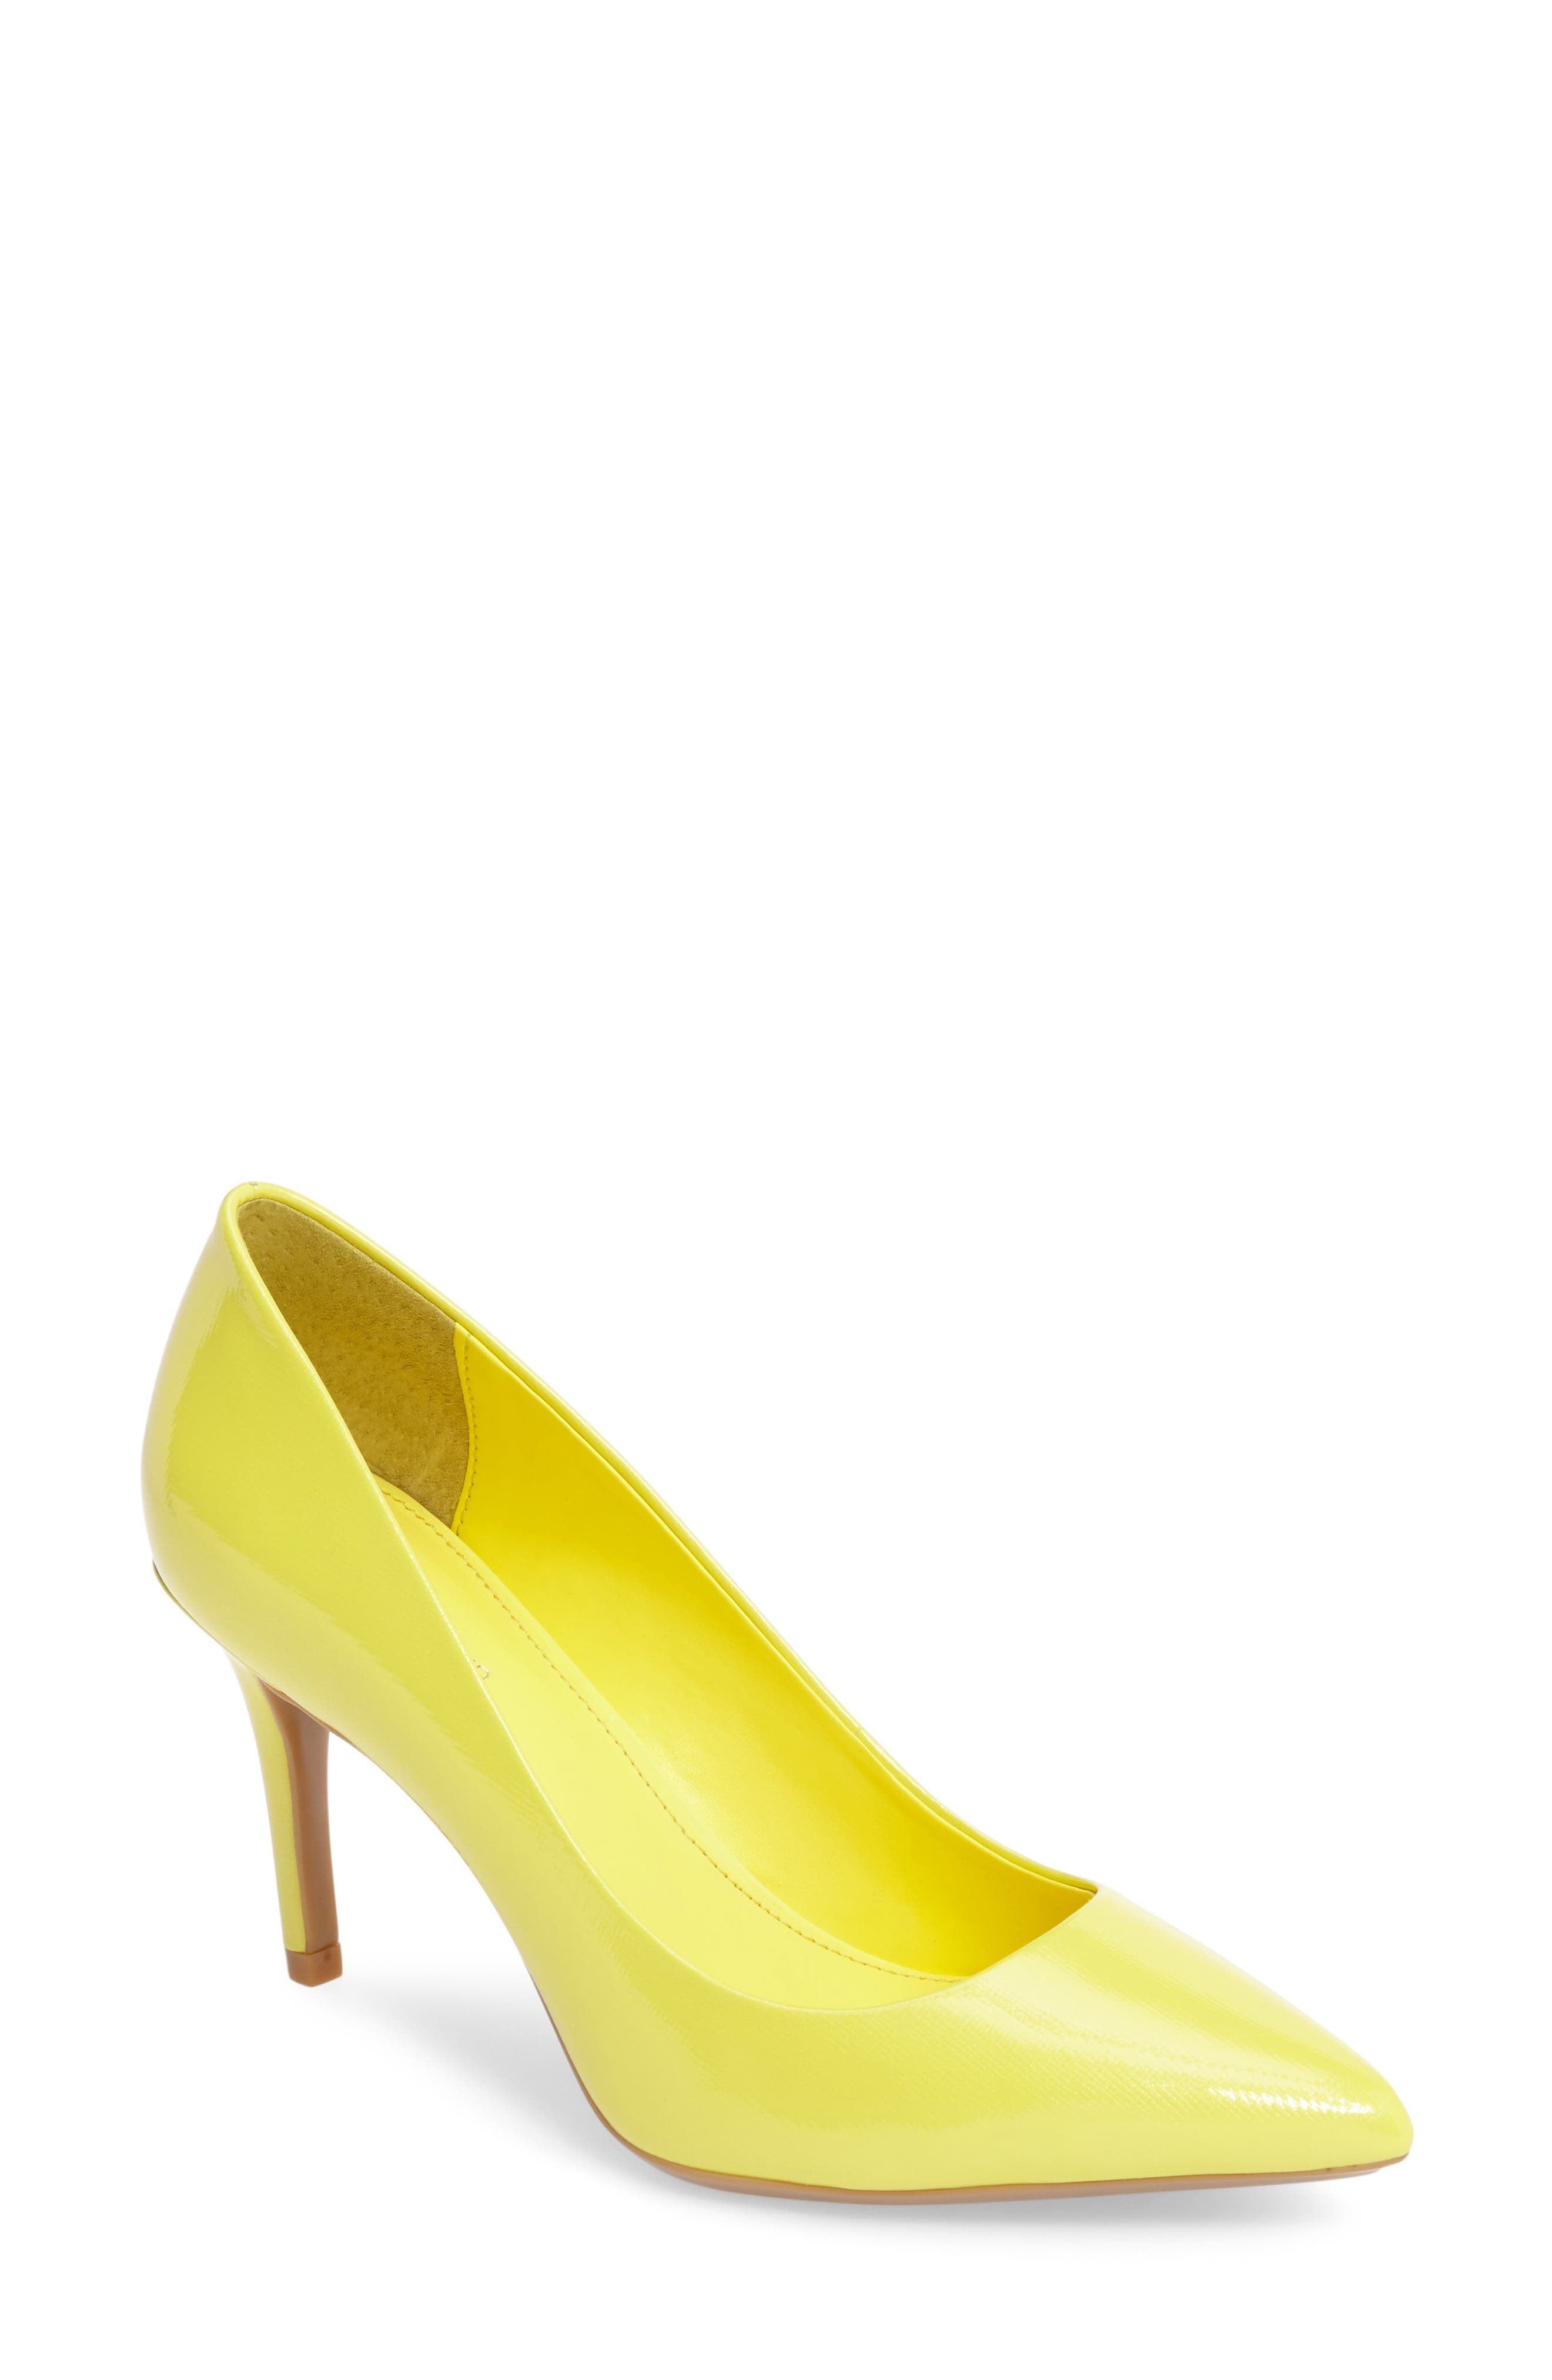 Women's Yellow Pumps | Nordstrom